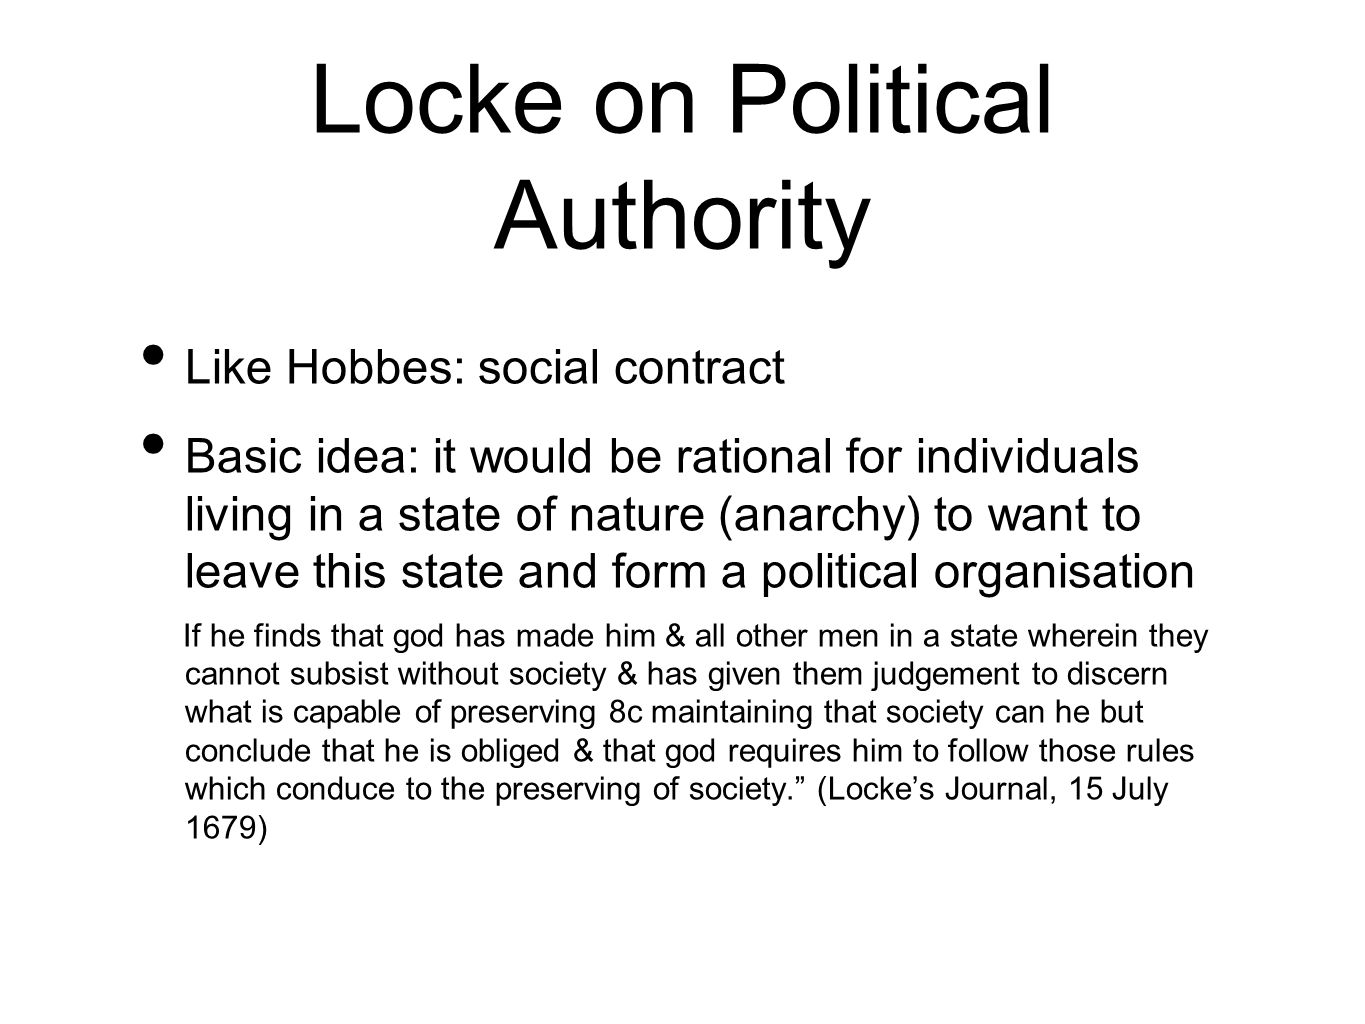 Note: Unlike Hobbes, Locke takes political obligation to originate from God (more like Filmer in this respect) But: Locke seeks to limit the authority of the government, by making it dependent on the consent of the governed